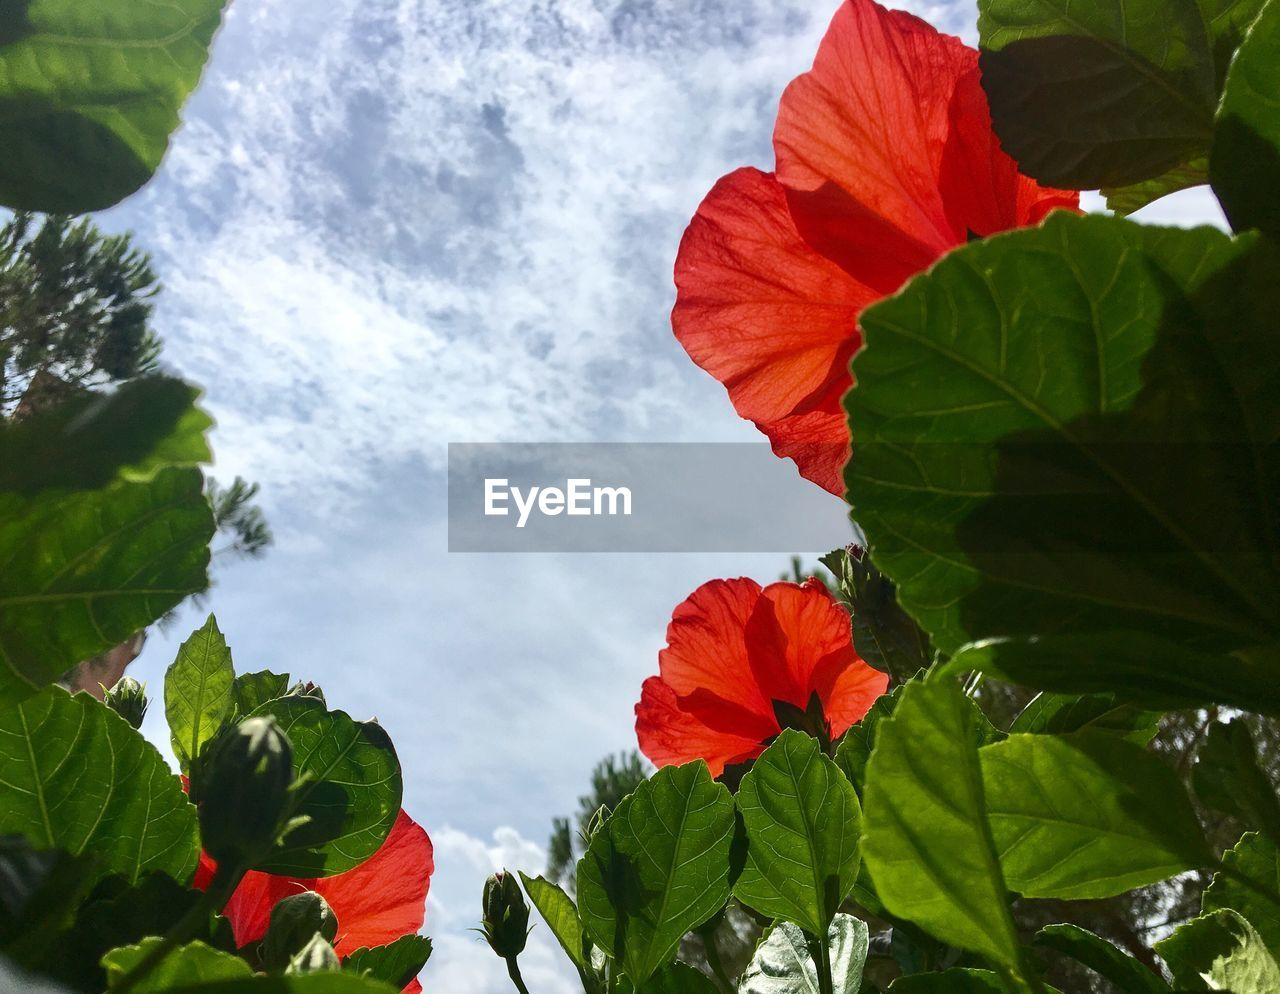 leaf, growth, plant, green color, nature, beauty in nature, freshness, fragility, flower, day, low angle view, petal, outdoors, no people, cloud - sky, flower head, red, hibiscus, blooming, close-up, petunia, sky